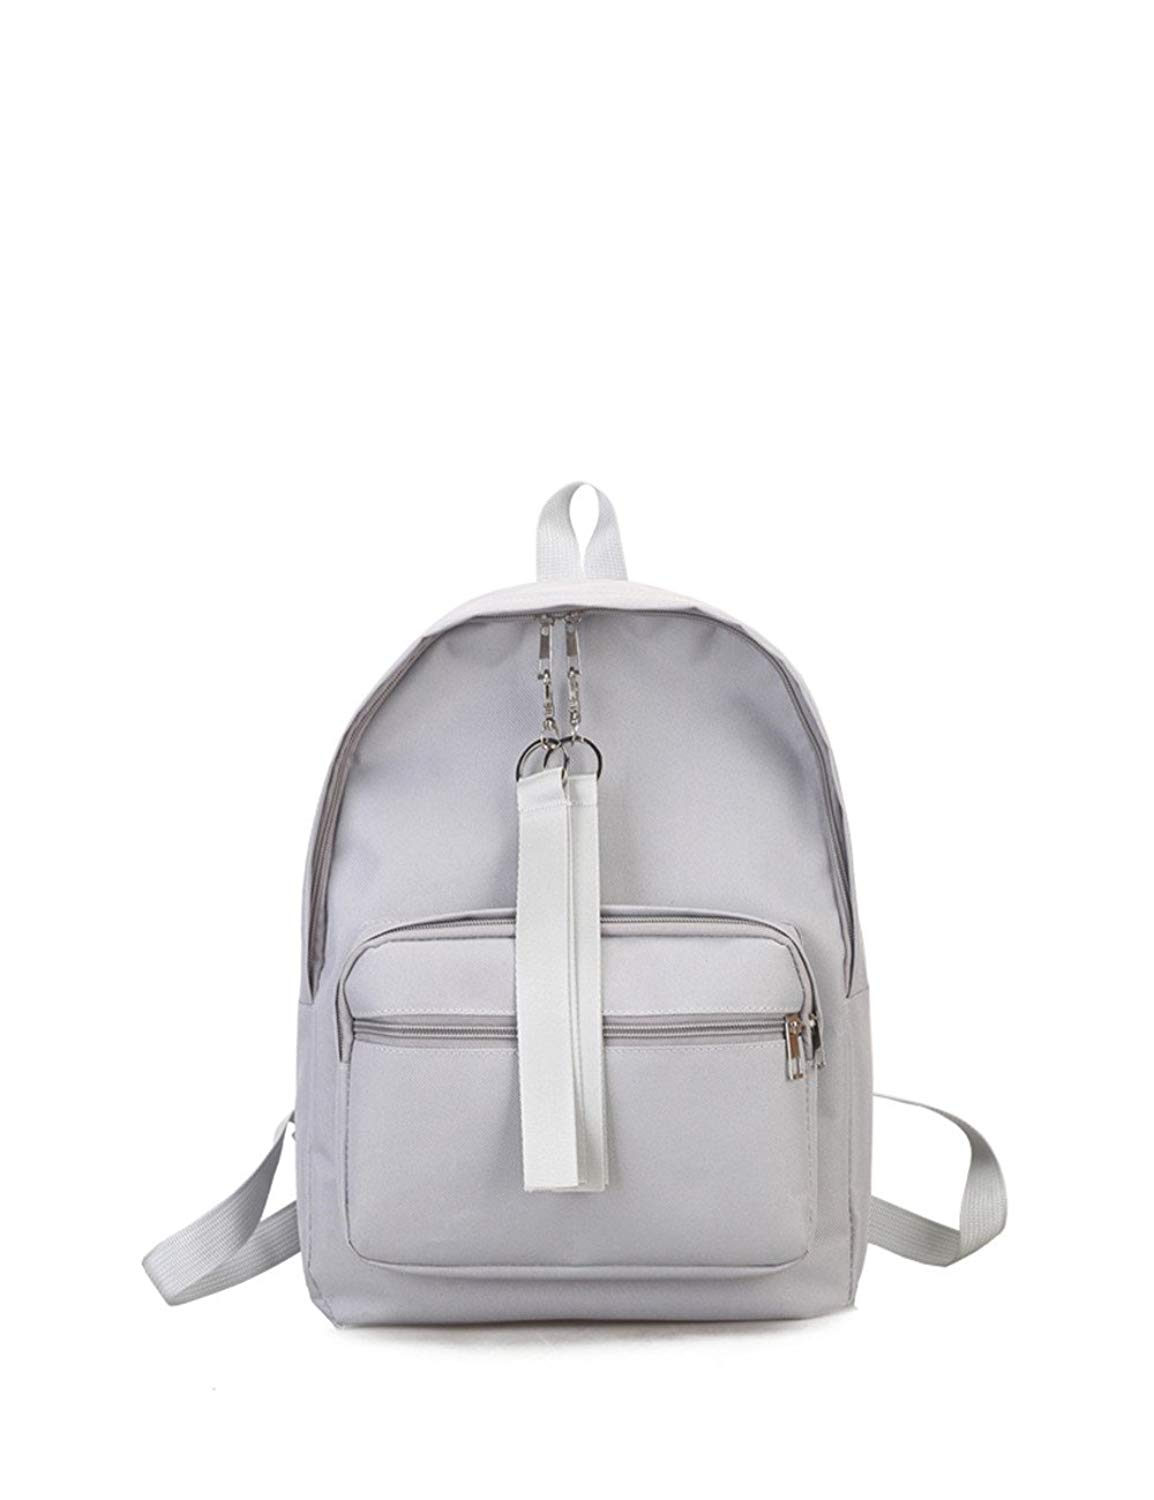 K.X.S Black Friday Promotions Womens Backpack Lacing Chic All Match Casual Backpack Color White